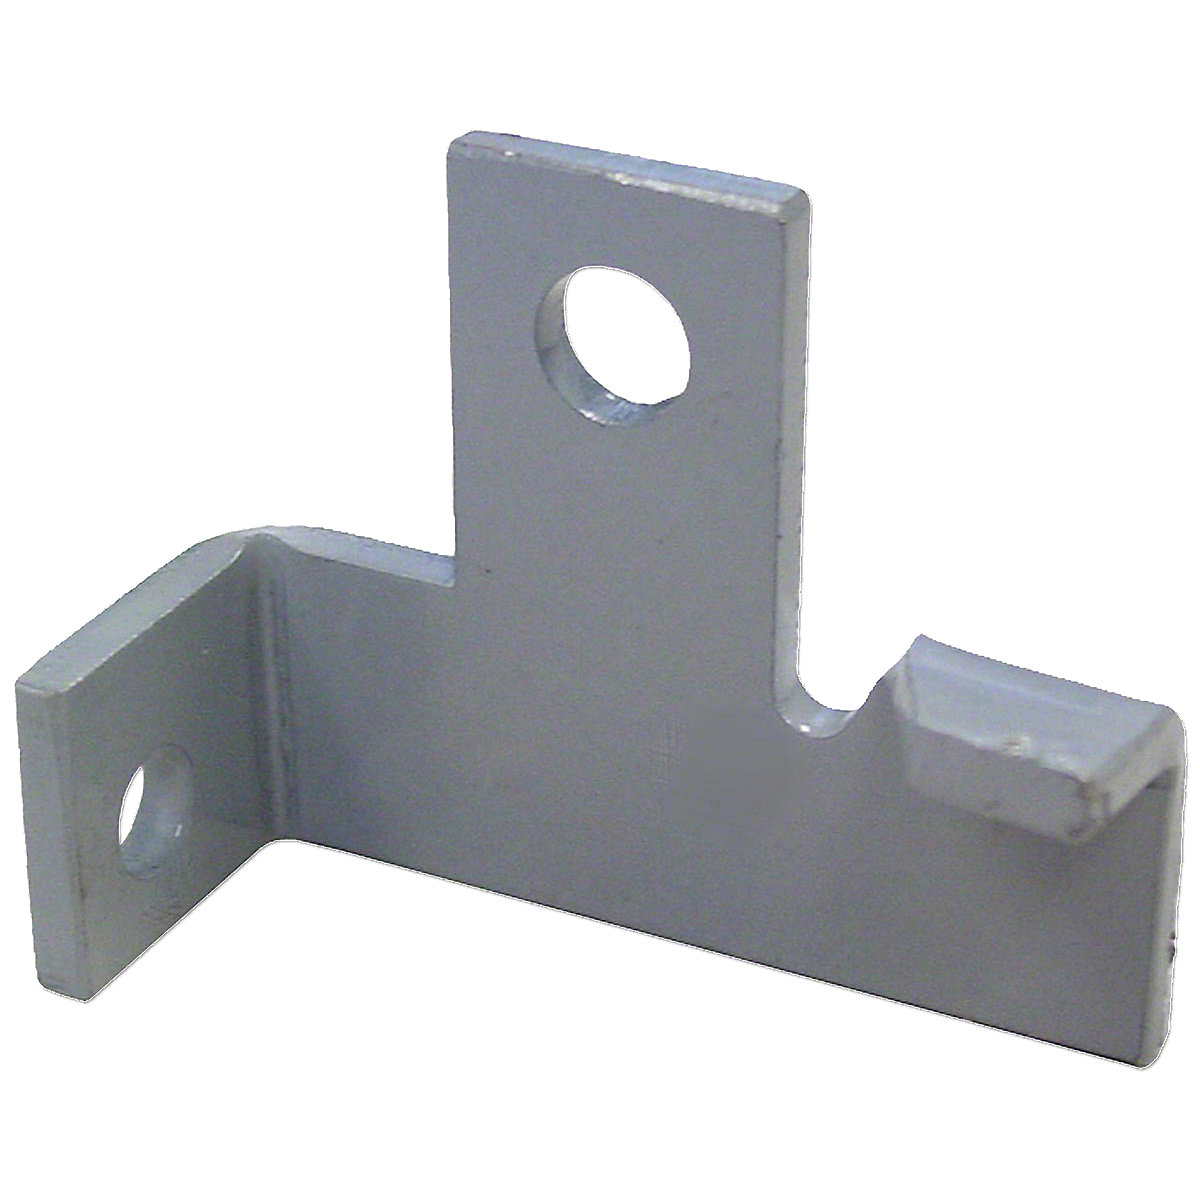 Throttle Rod Bracket For Allis Chalmers: G.